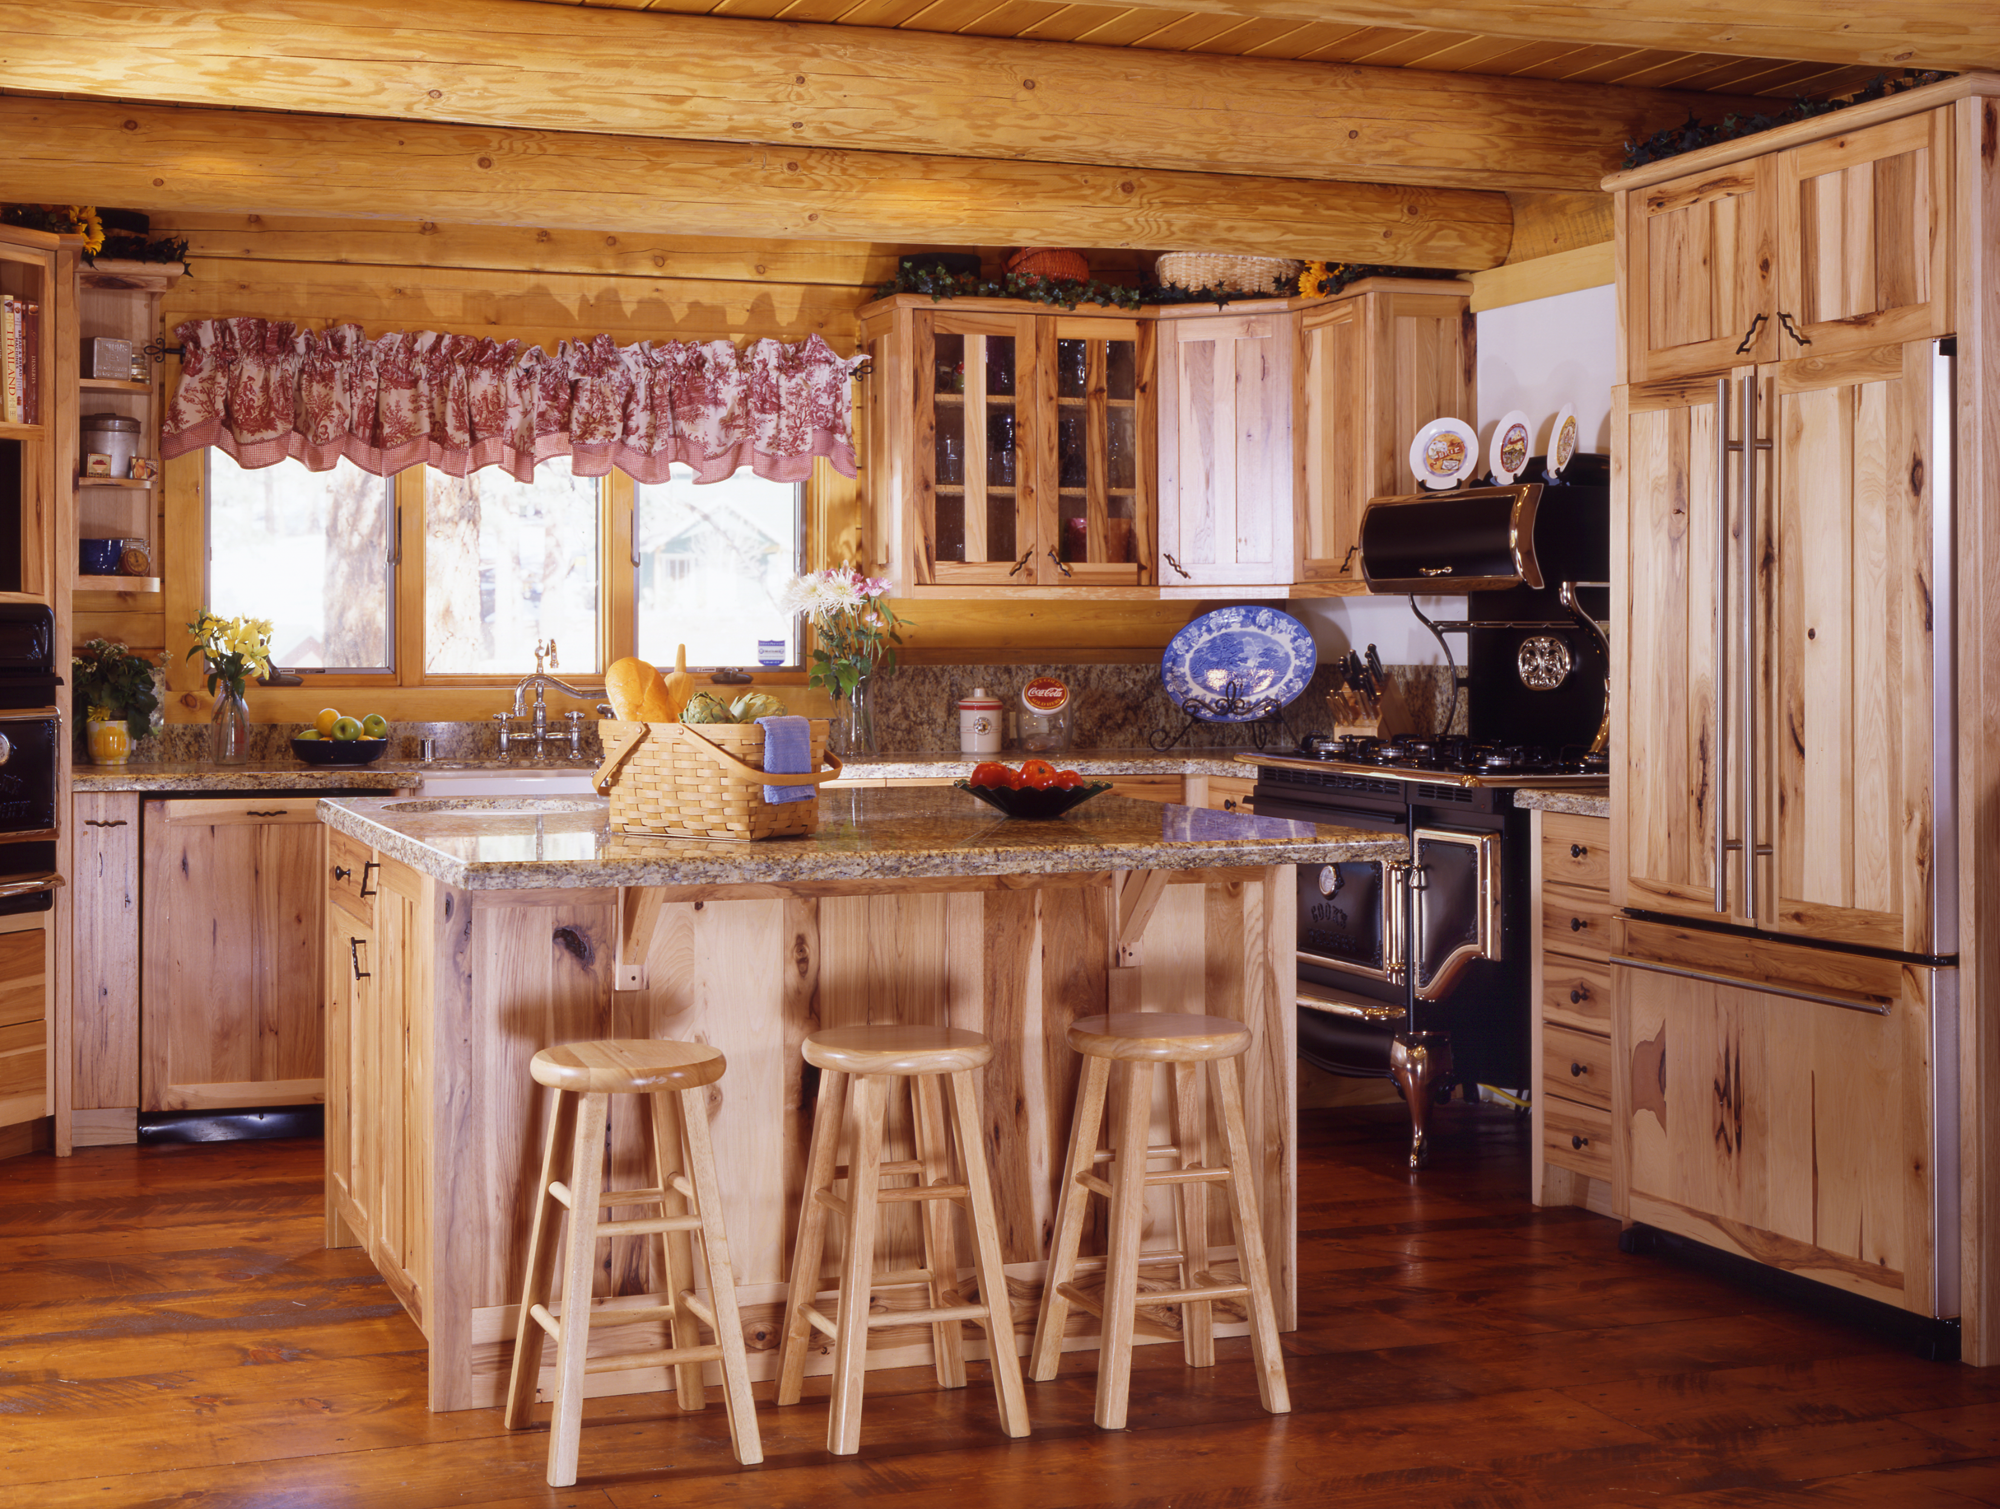 Summer Time and these Log Home Kitchens are Hot